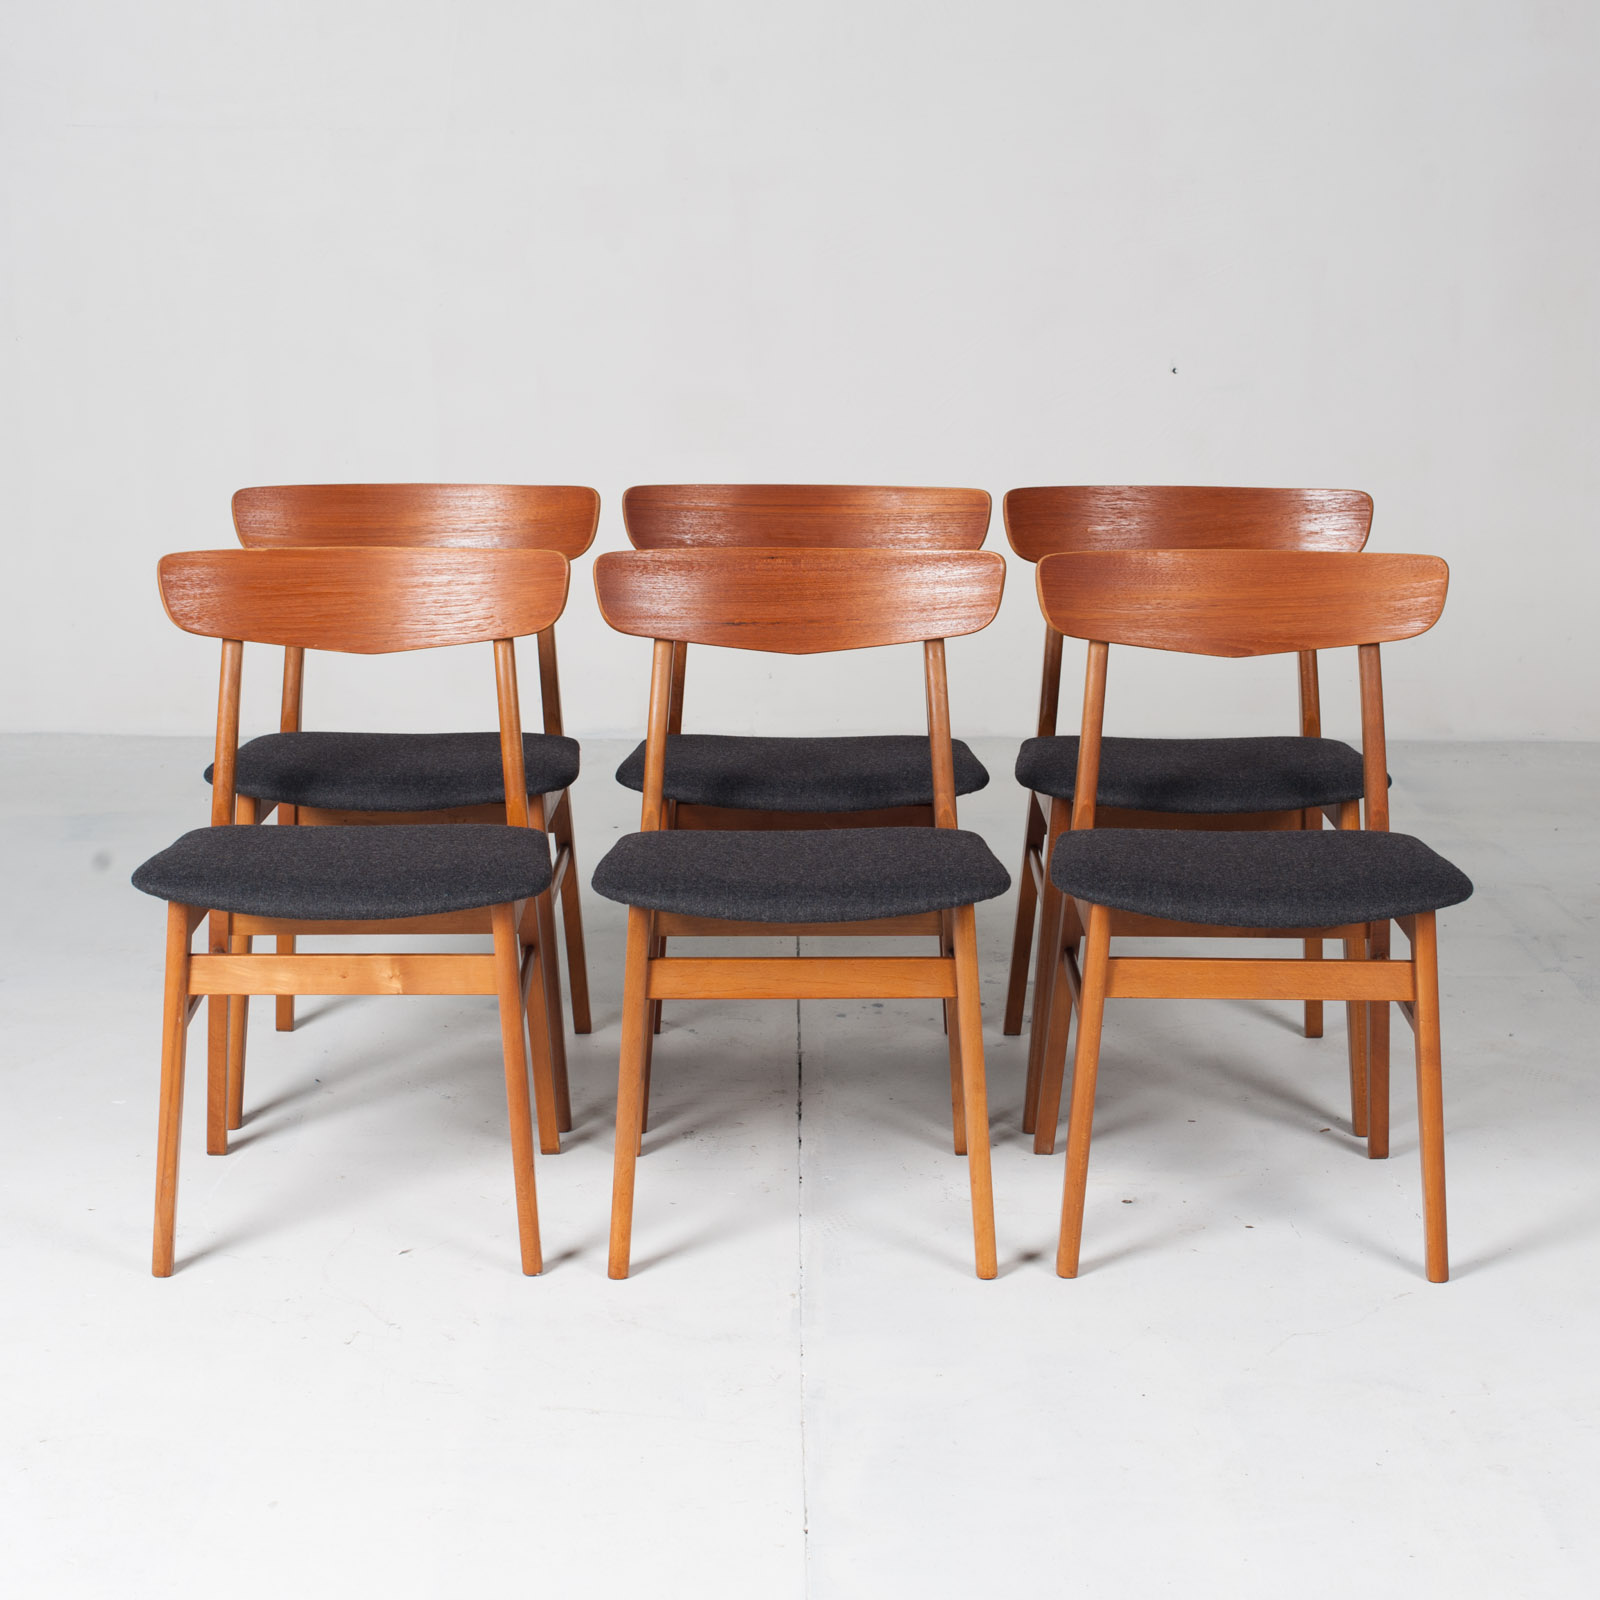 V Back Dining Chairs By Farstrup In Teak And New Navy Upholstery 1960s Denmark 19